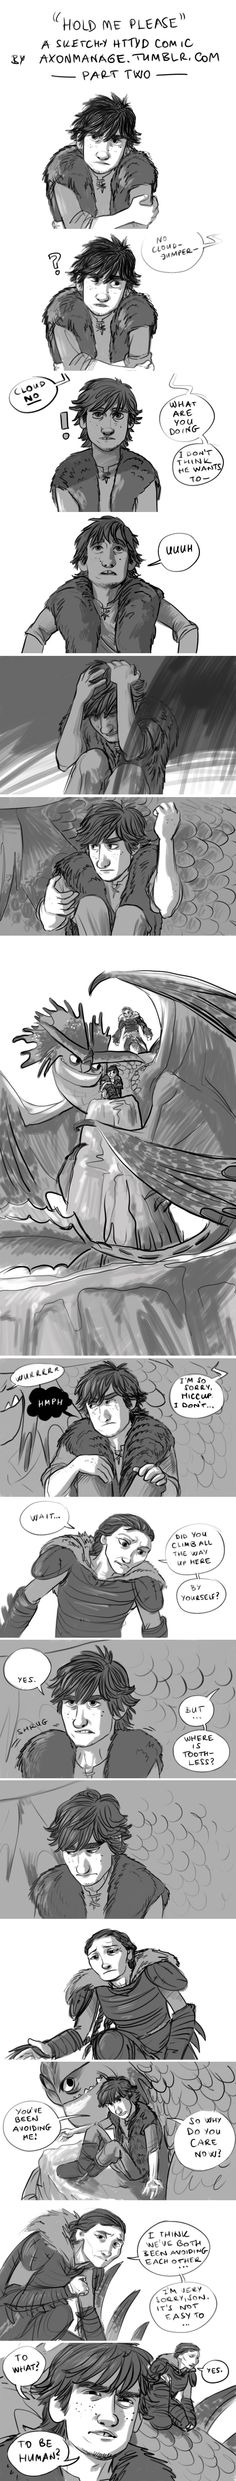 Hold Me Please - a sketch-y HTTYD comic, part two by axondrive on deviantART